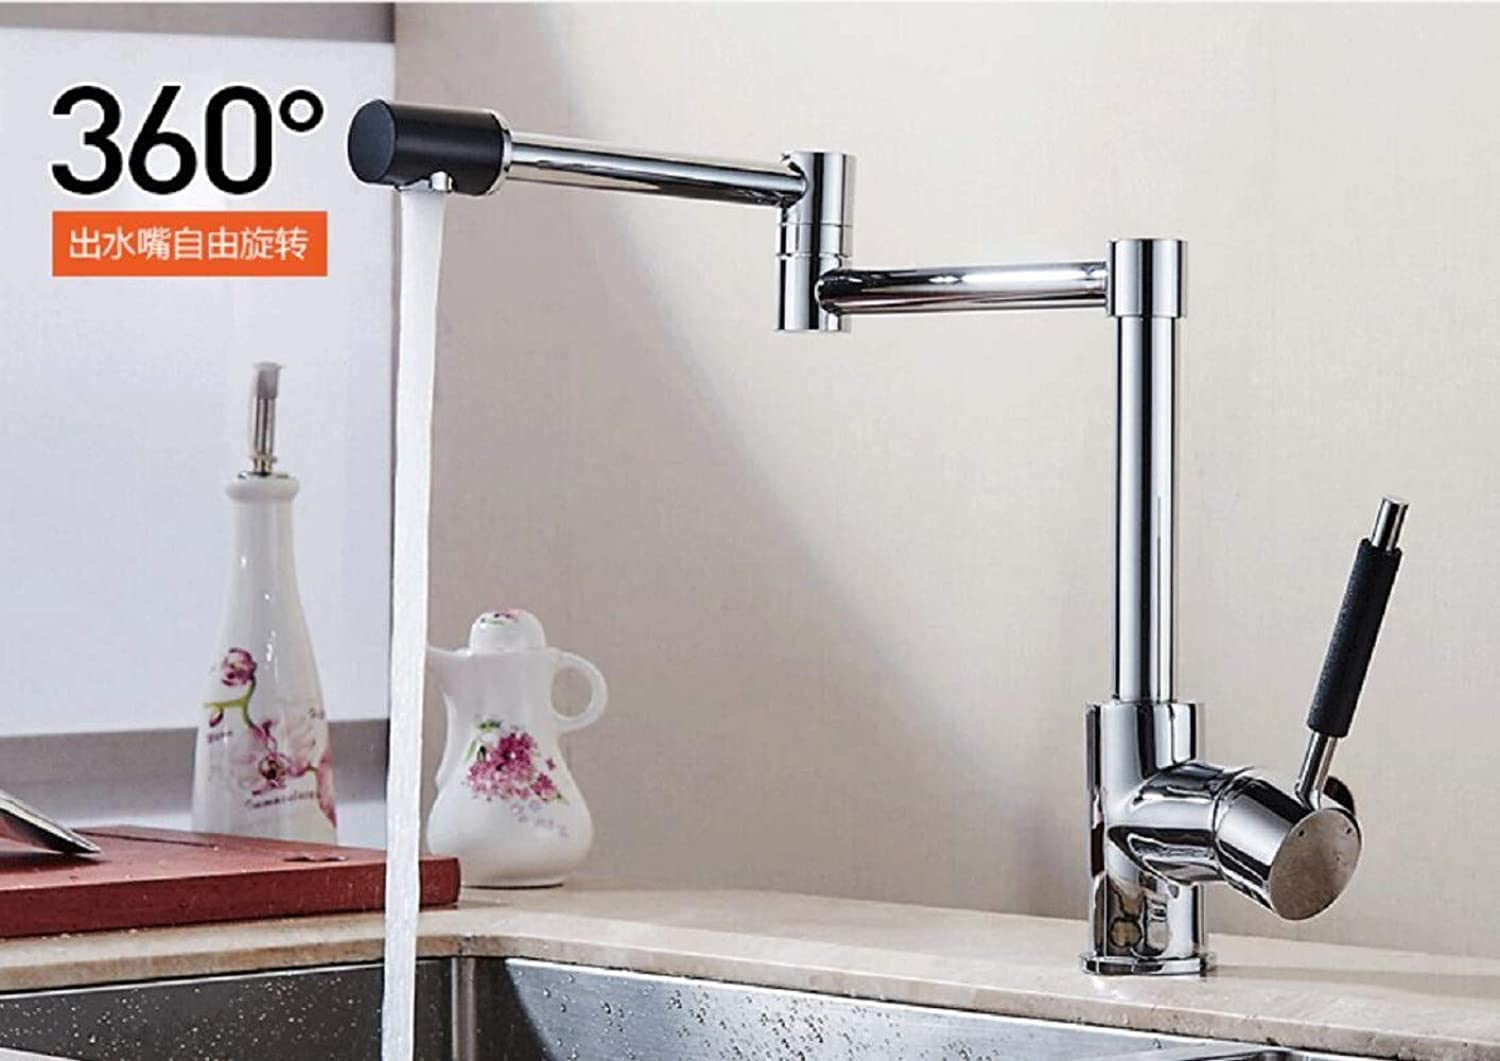 Kitchen Tap Main Folding Dishwasher Universal Sink redary Kitchen Cold and Hot Water Faucet Kitchen Taps Kitchen Sink Mixer Taps Basin Tap